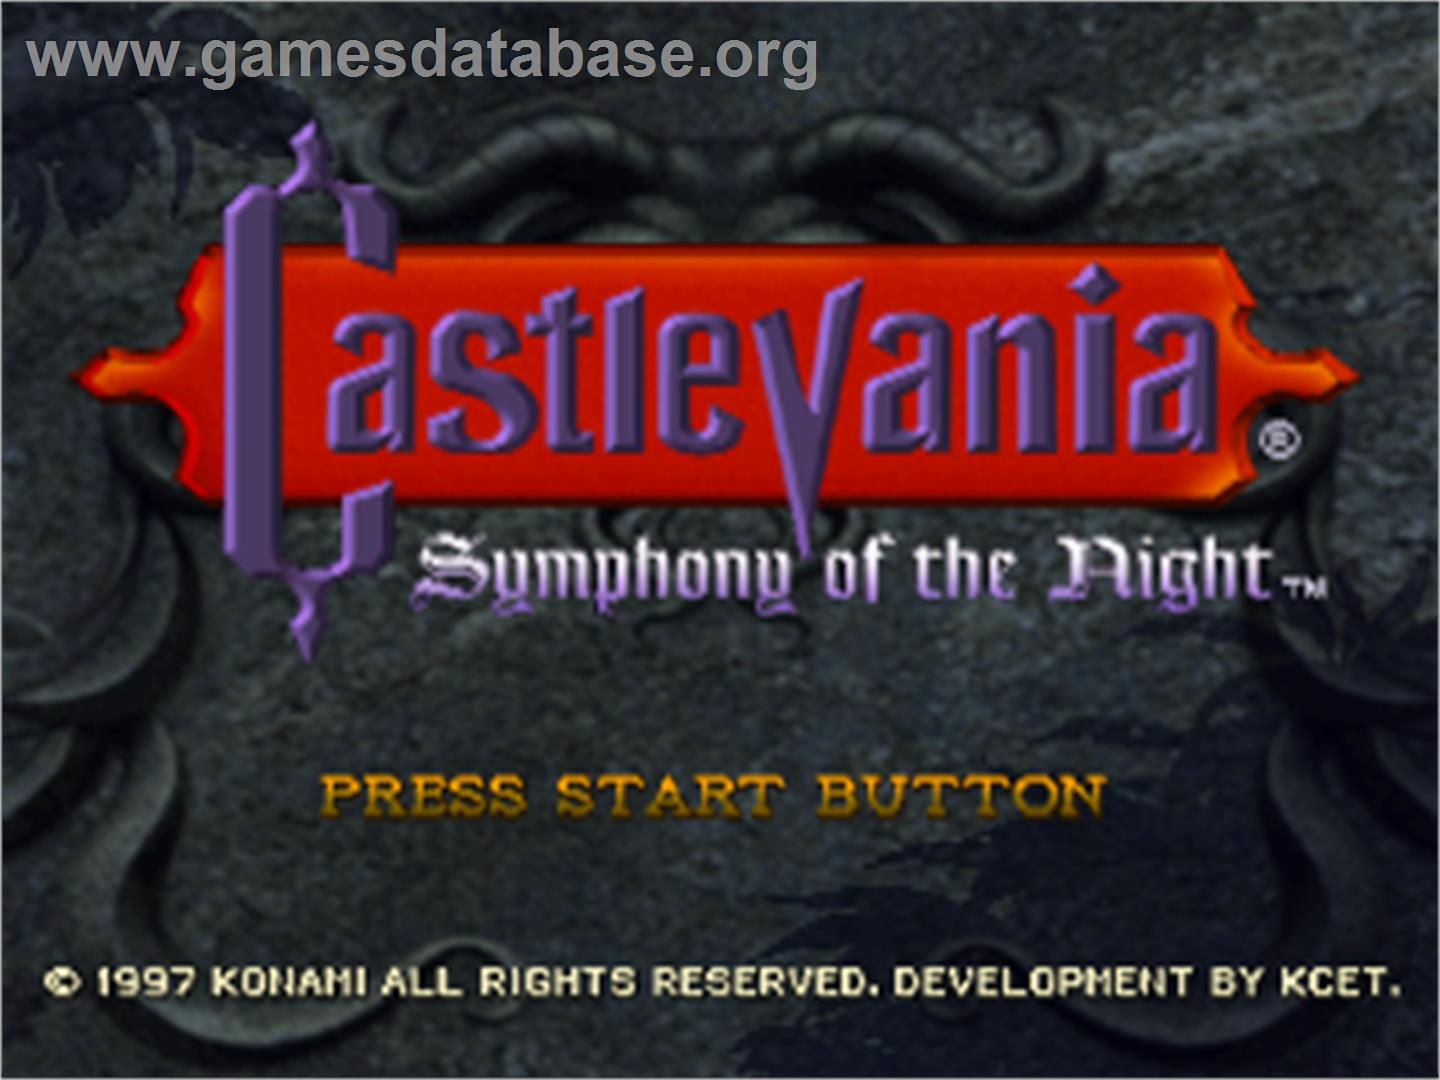 Castlevania: Symphony of the Night - Sony Playstation - Artwork - Title Screen